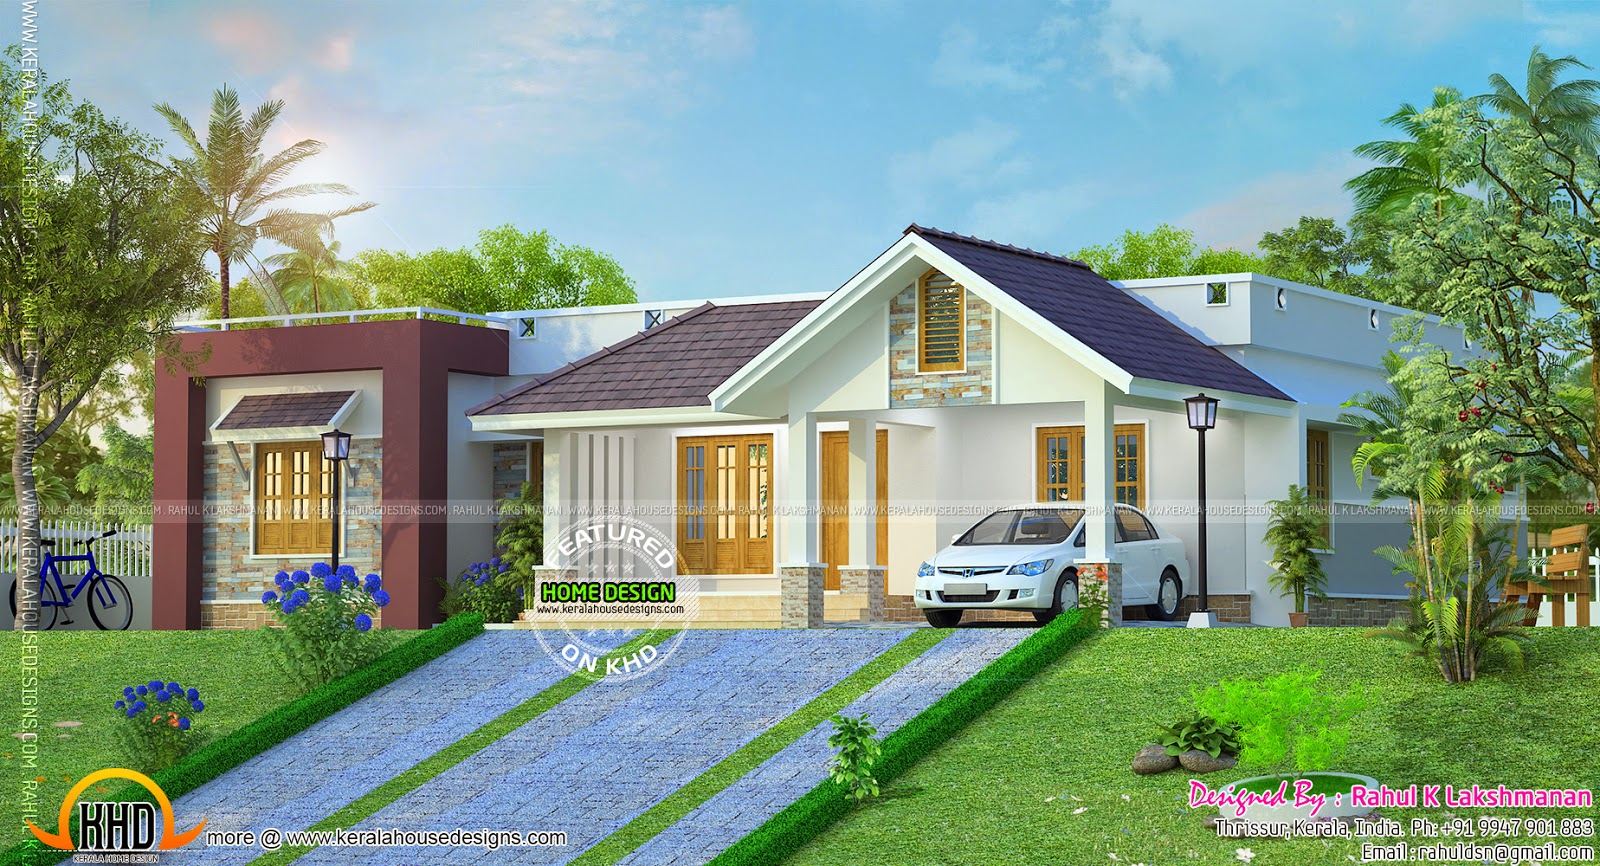 Hillside home plan kerala home design and floor plans for Hillside house plans